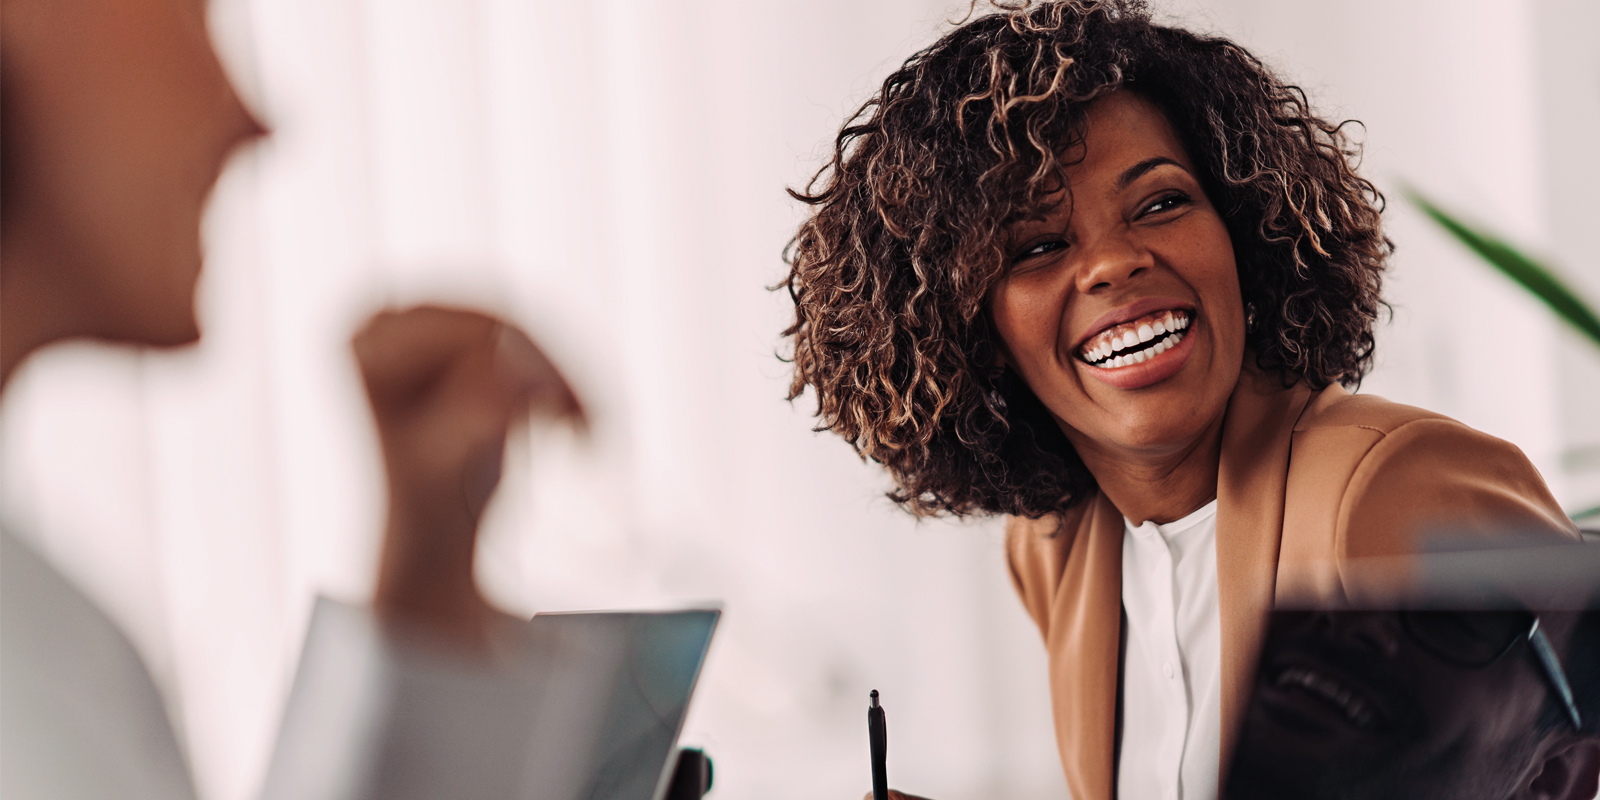 A business woman laughing with her colleagues